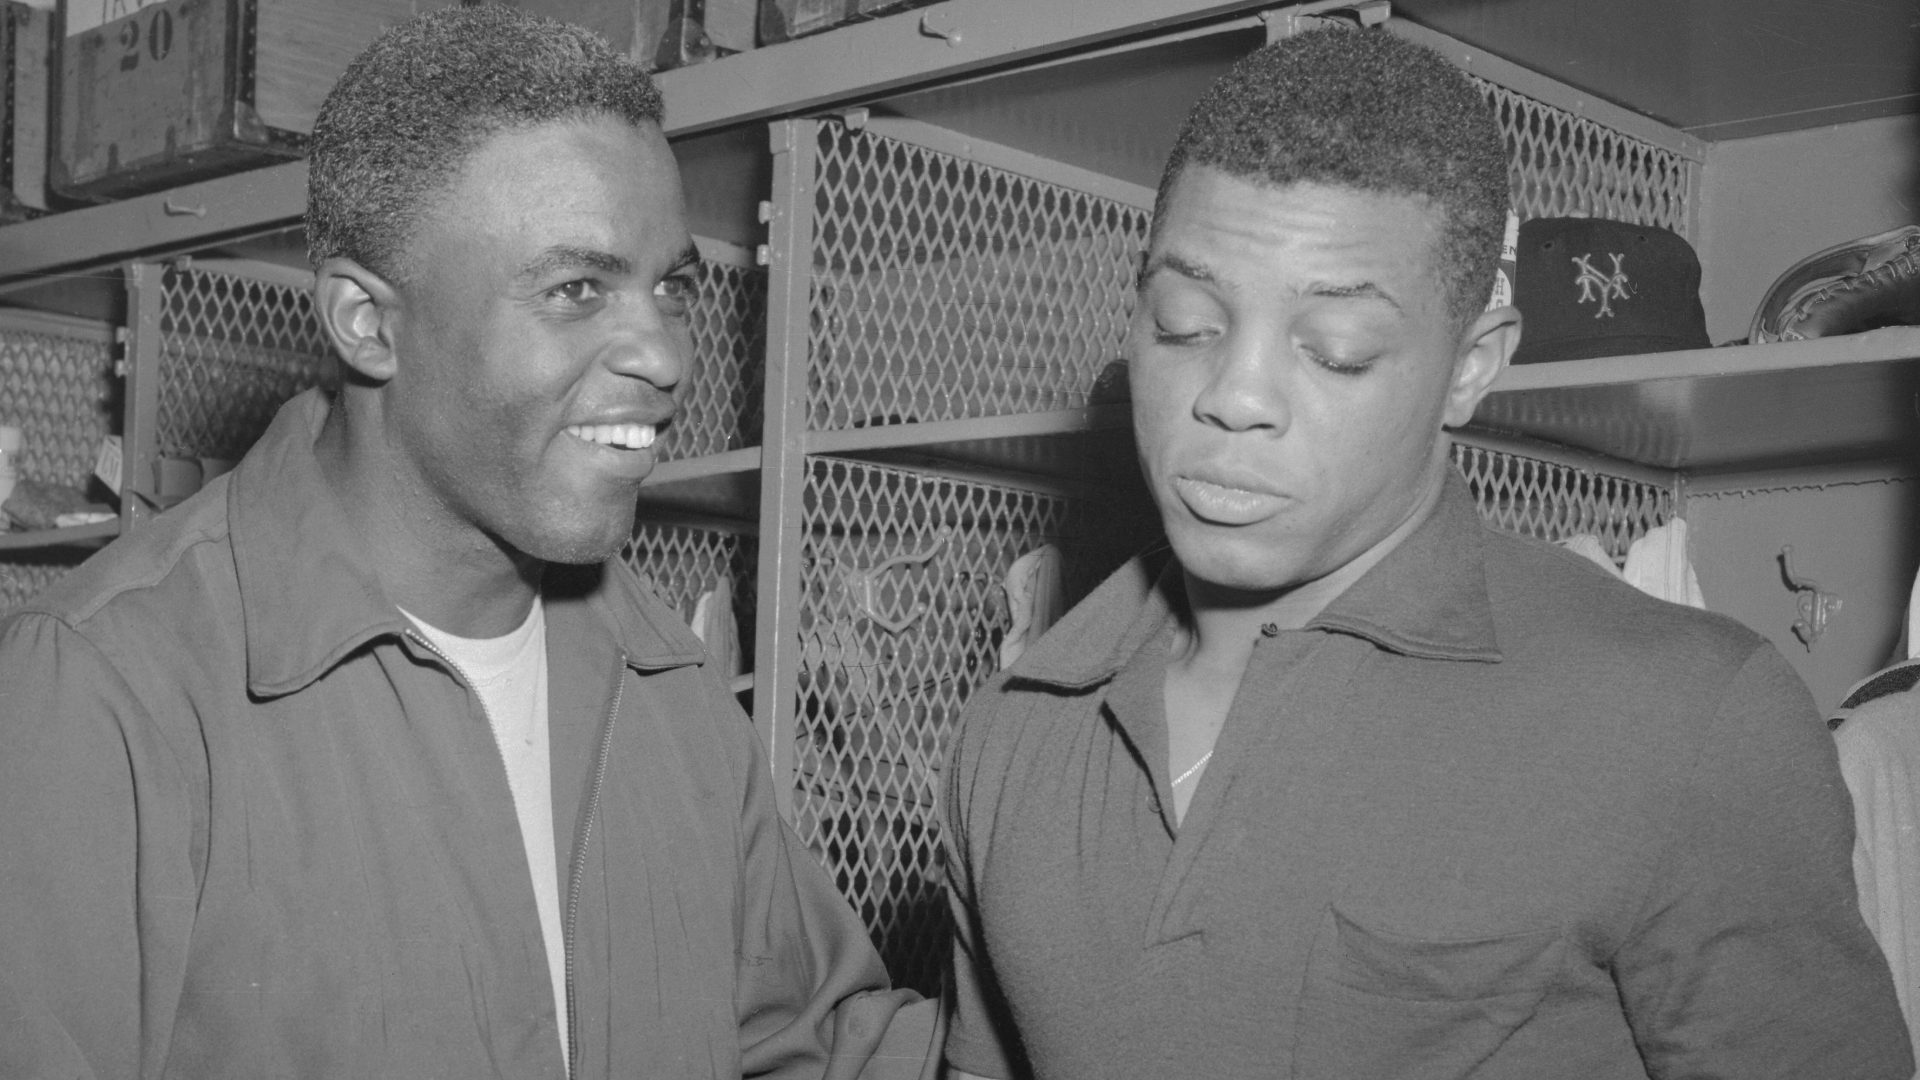 Willie Mays and Jackie Robinson in Locker Room